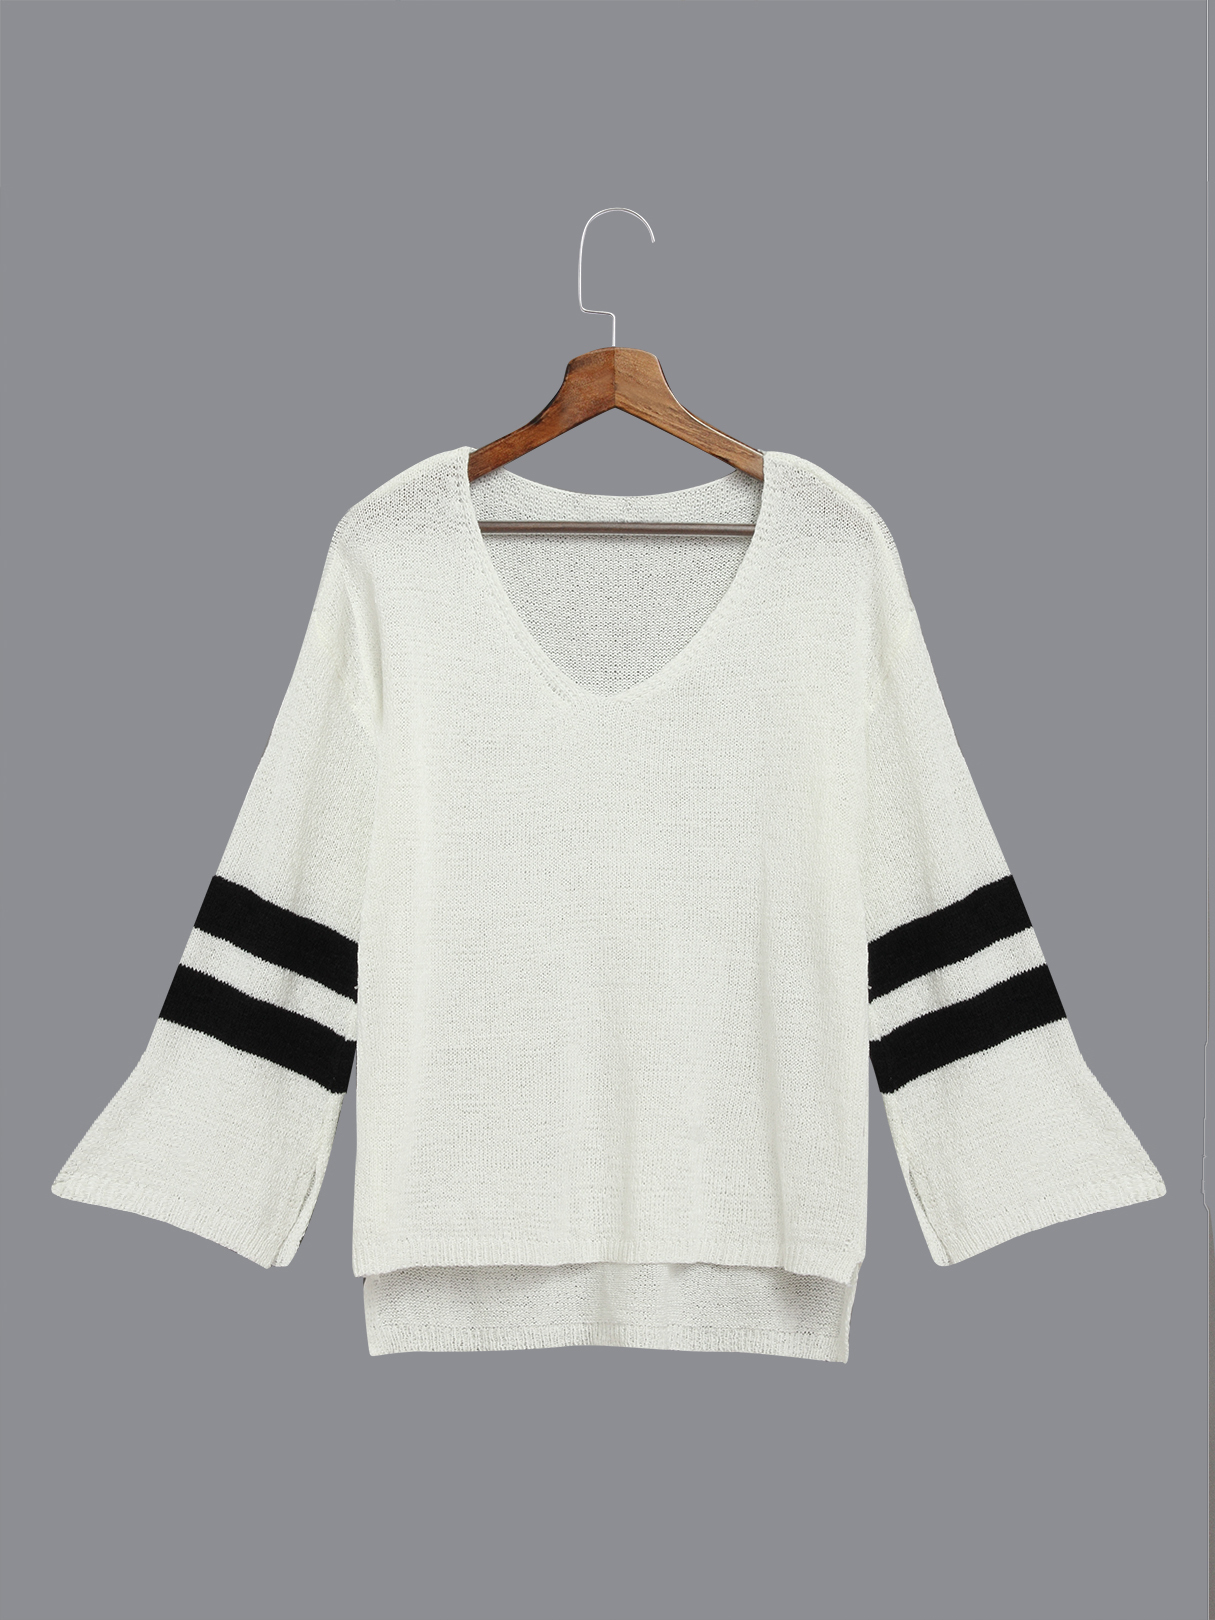 White Flared Sleeves Causal Blouse